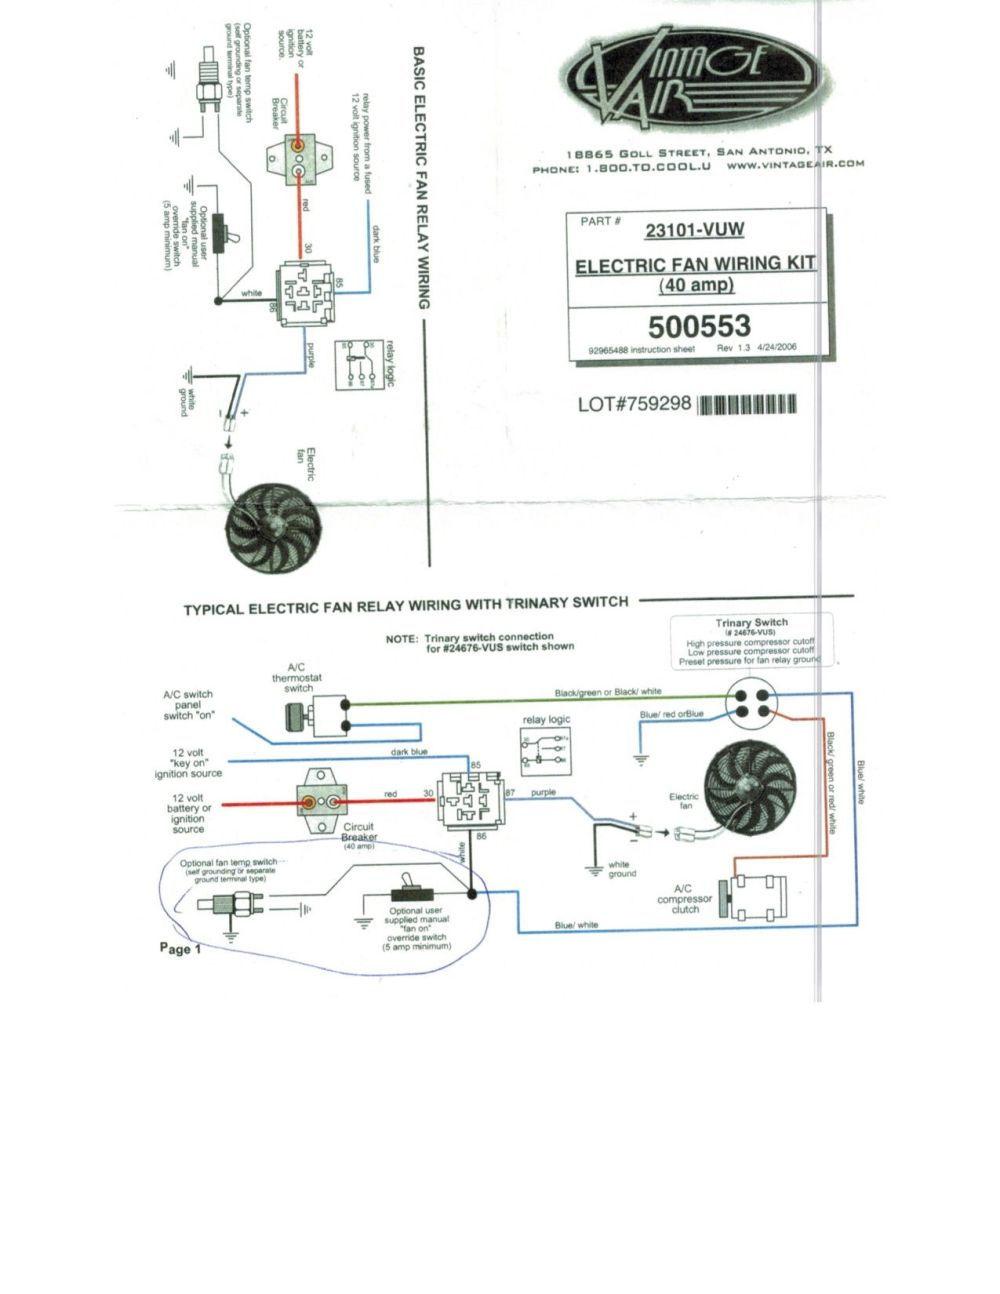 medium resolution of fan wiring questions for ls1 with american autowire vintage air diagram vintage air wiring diagram